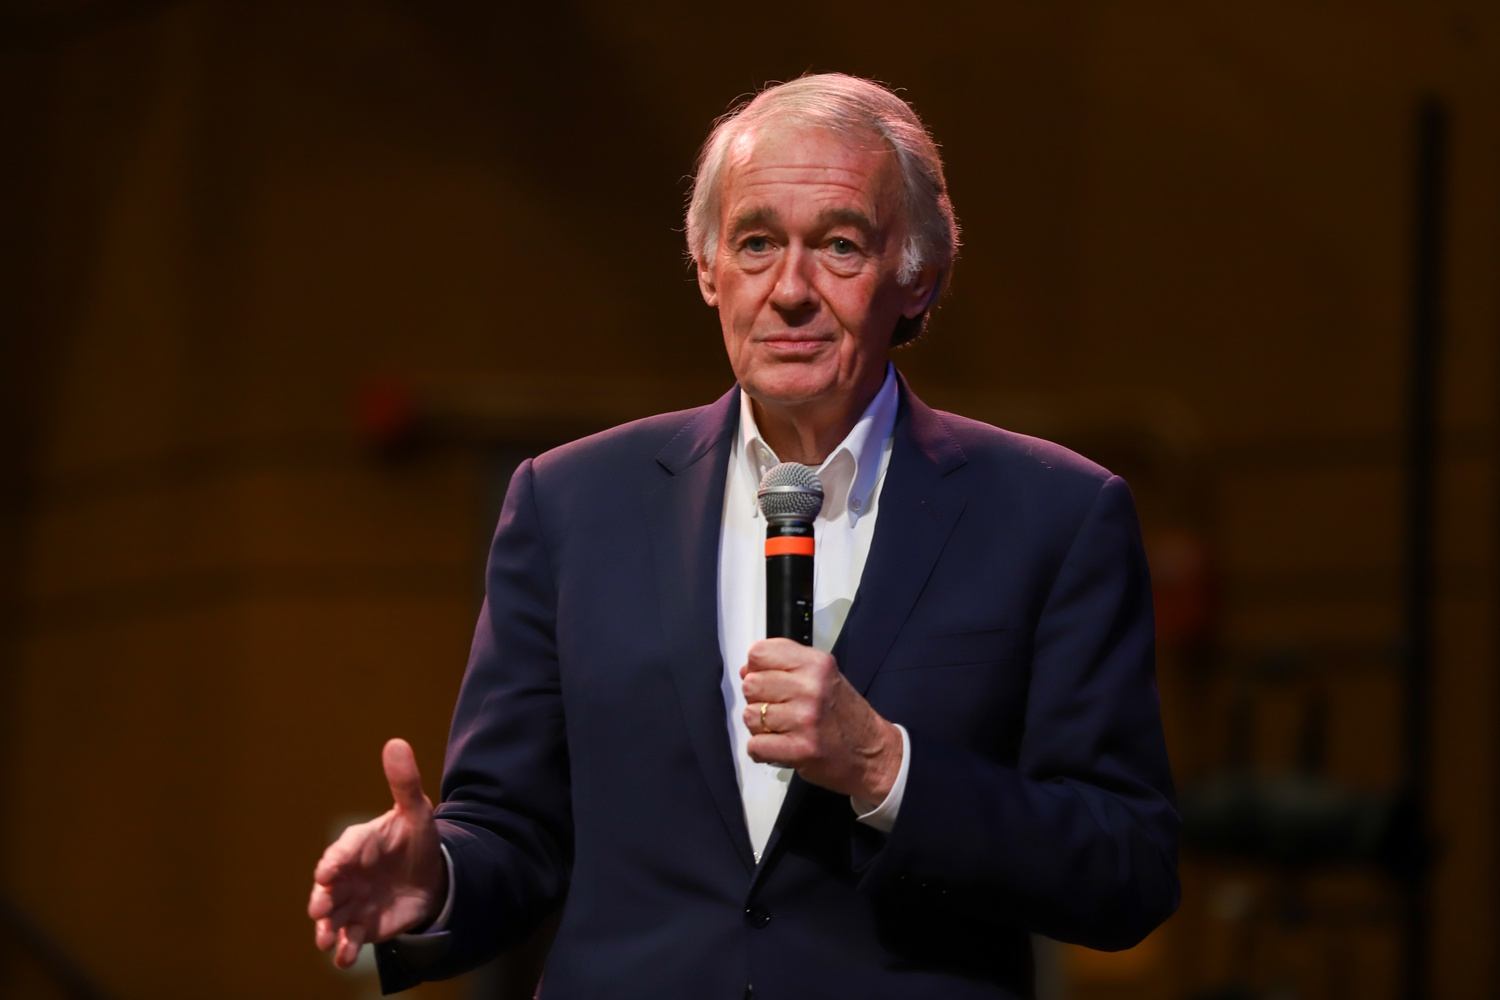 Senator Edward J. Markey (D-Mass.) was recently endorsed by Cambridge City Councilors in his re-election campaign for U.S. Senate.